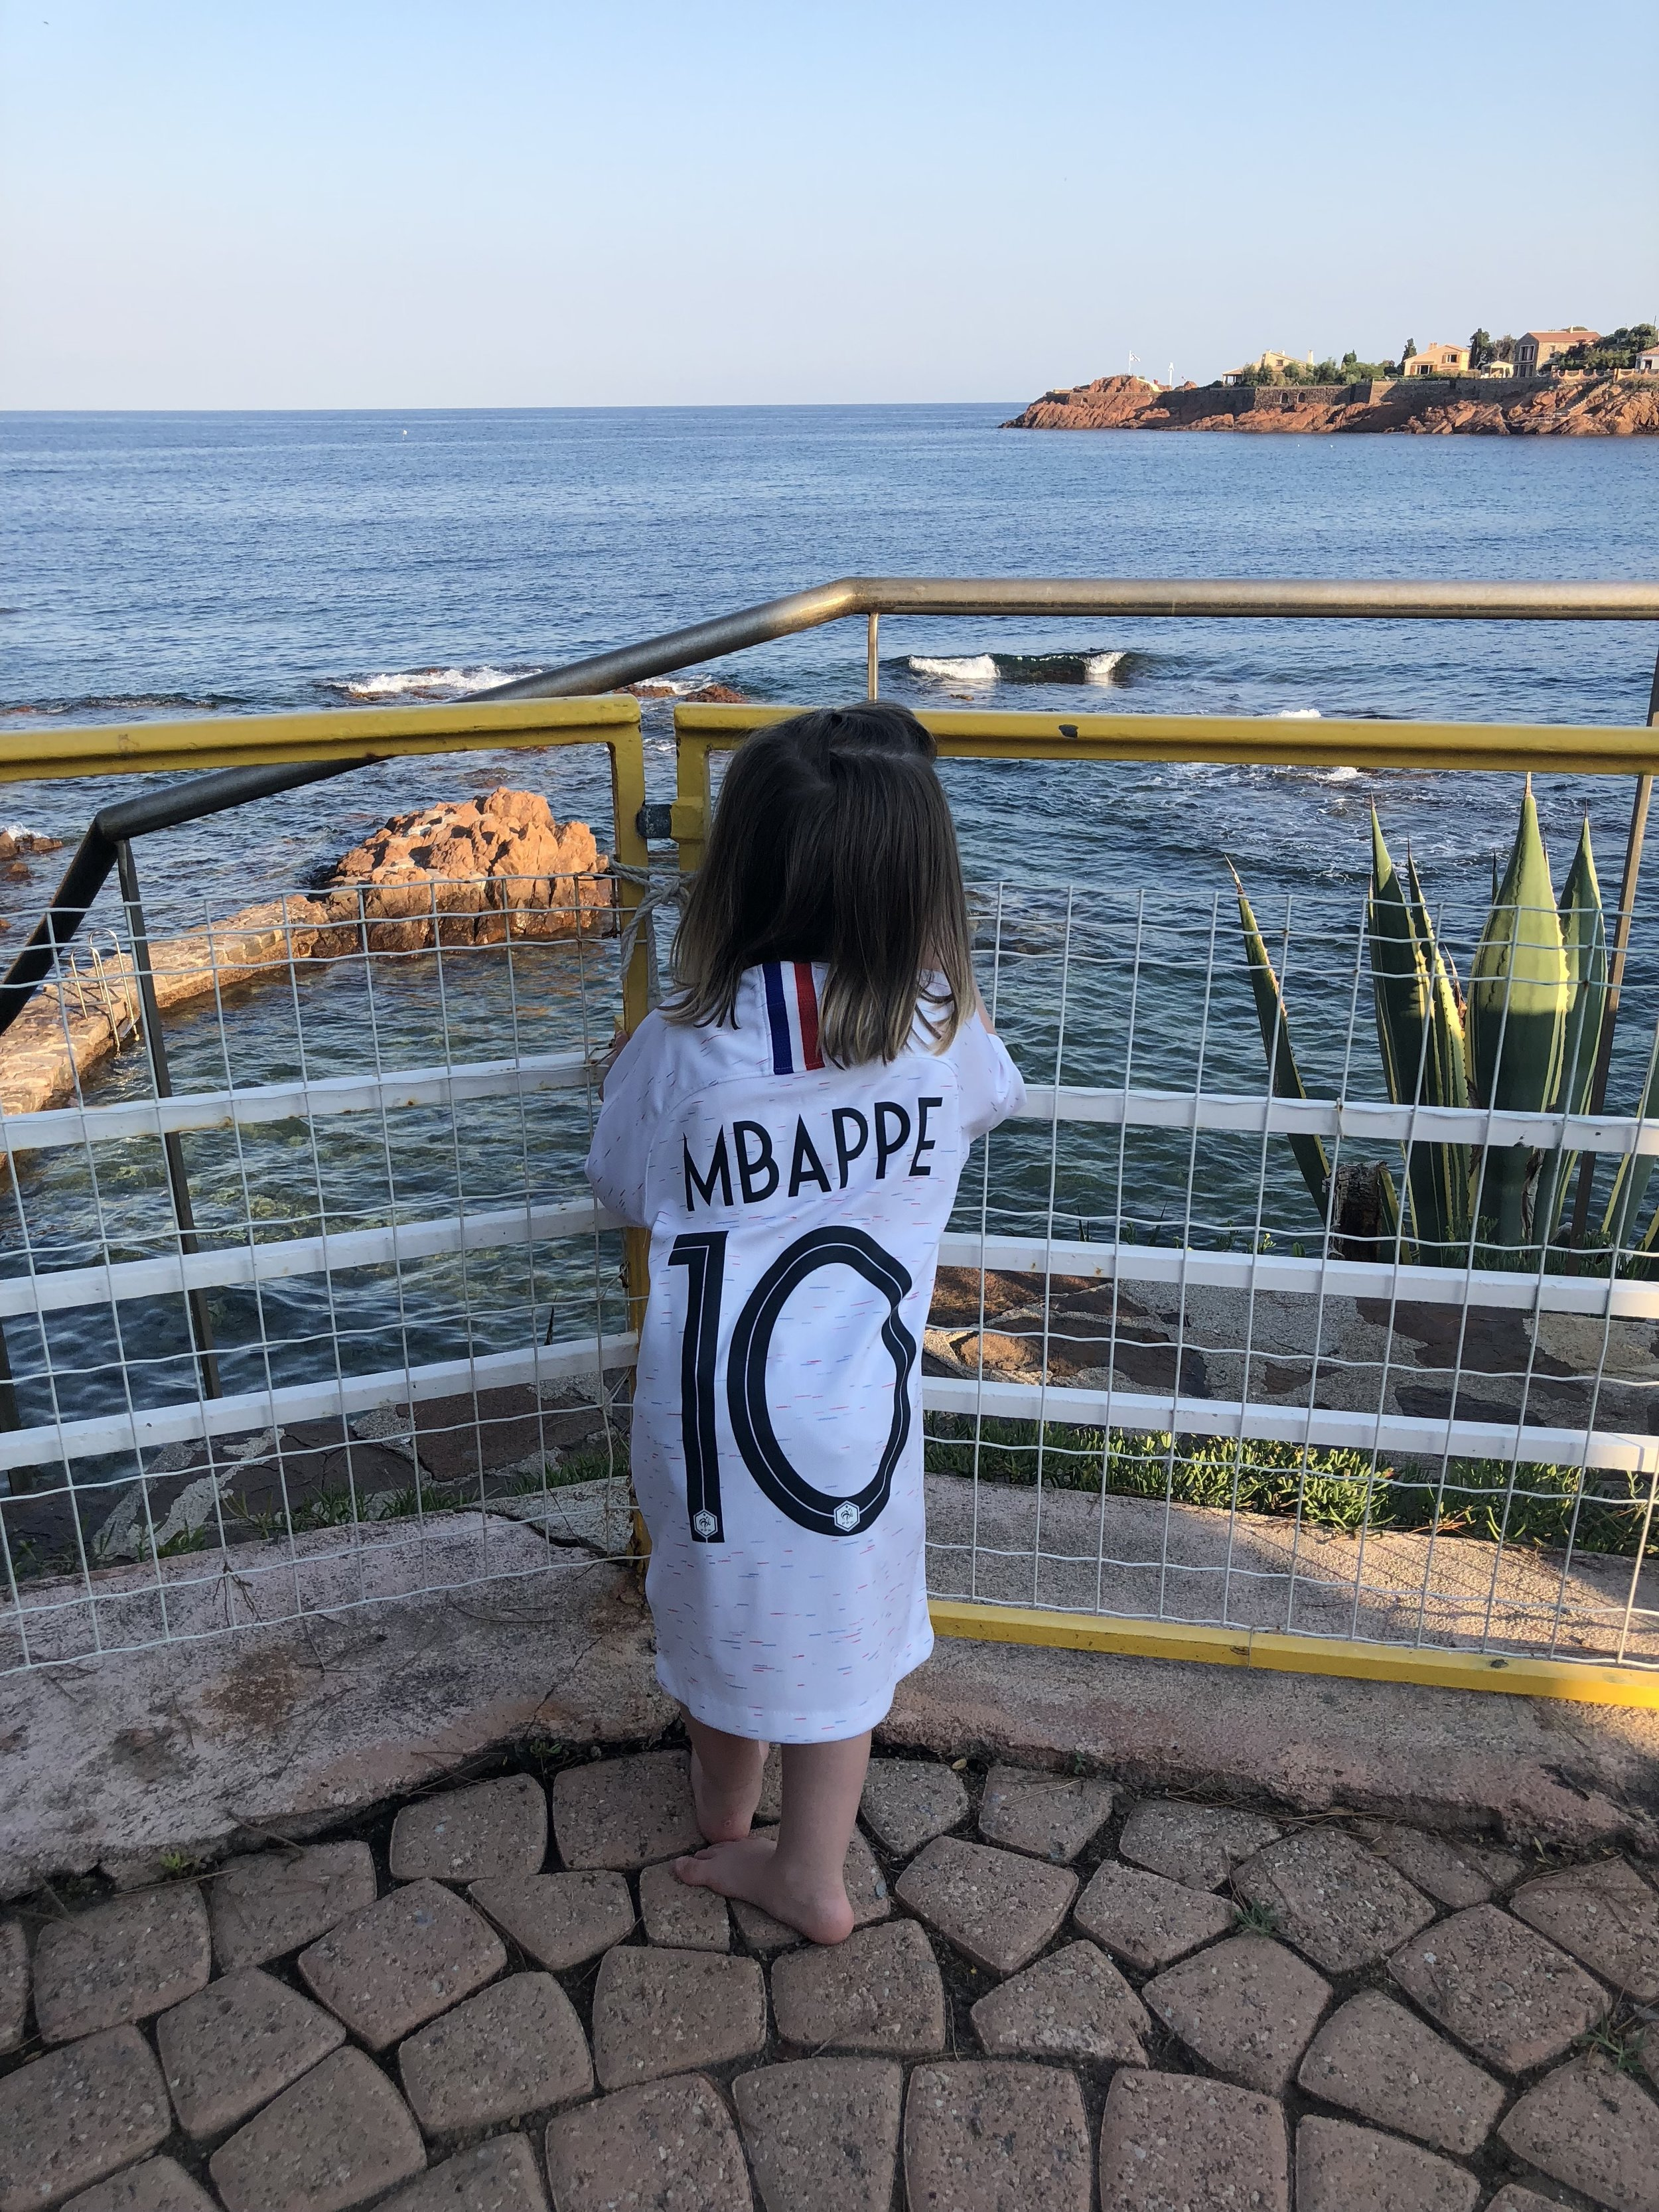 / - Antheor-France: This is Mia wearing her best kit on a very special day for France where we were all united. Unfortunately that feeling did not last long..